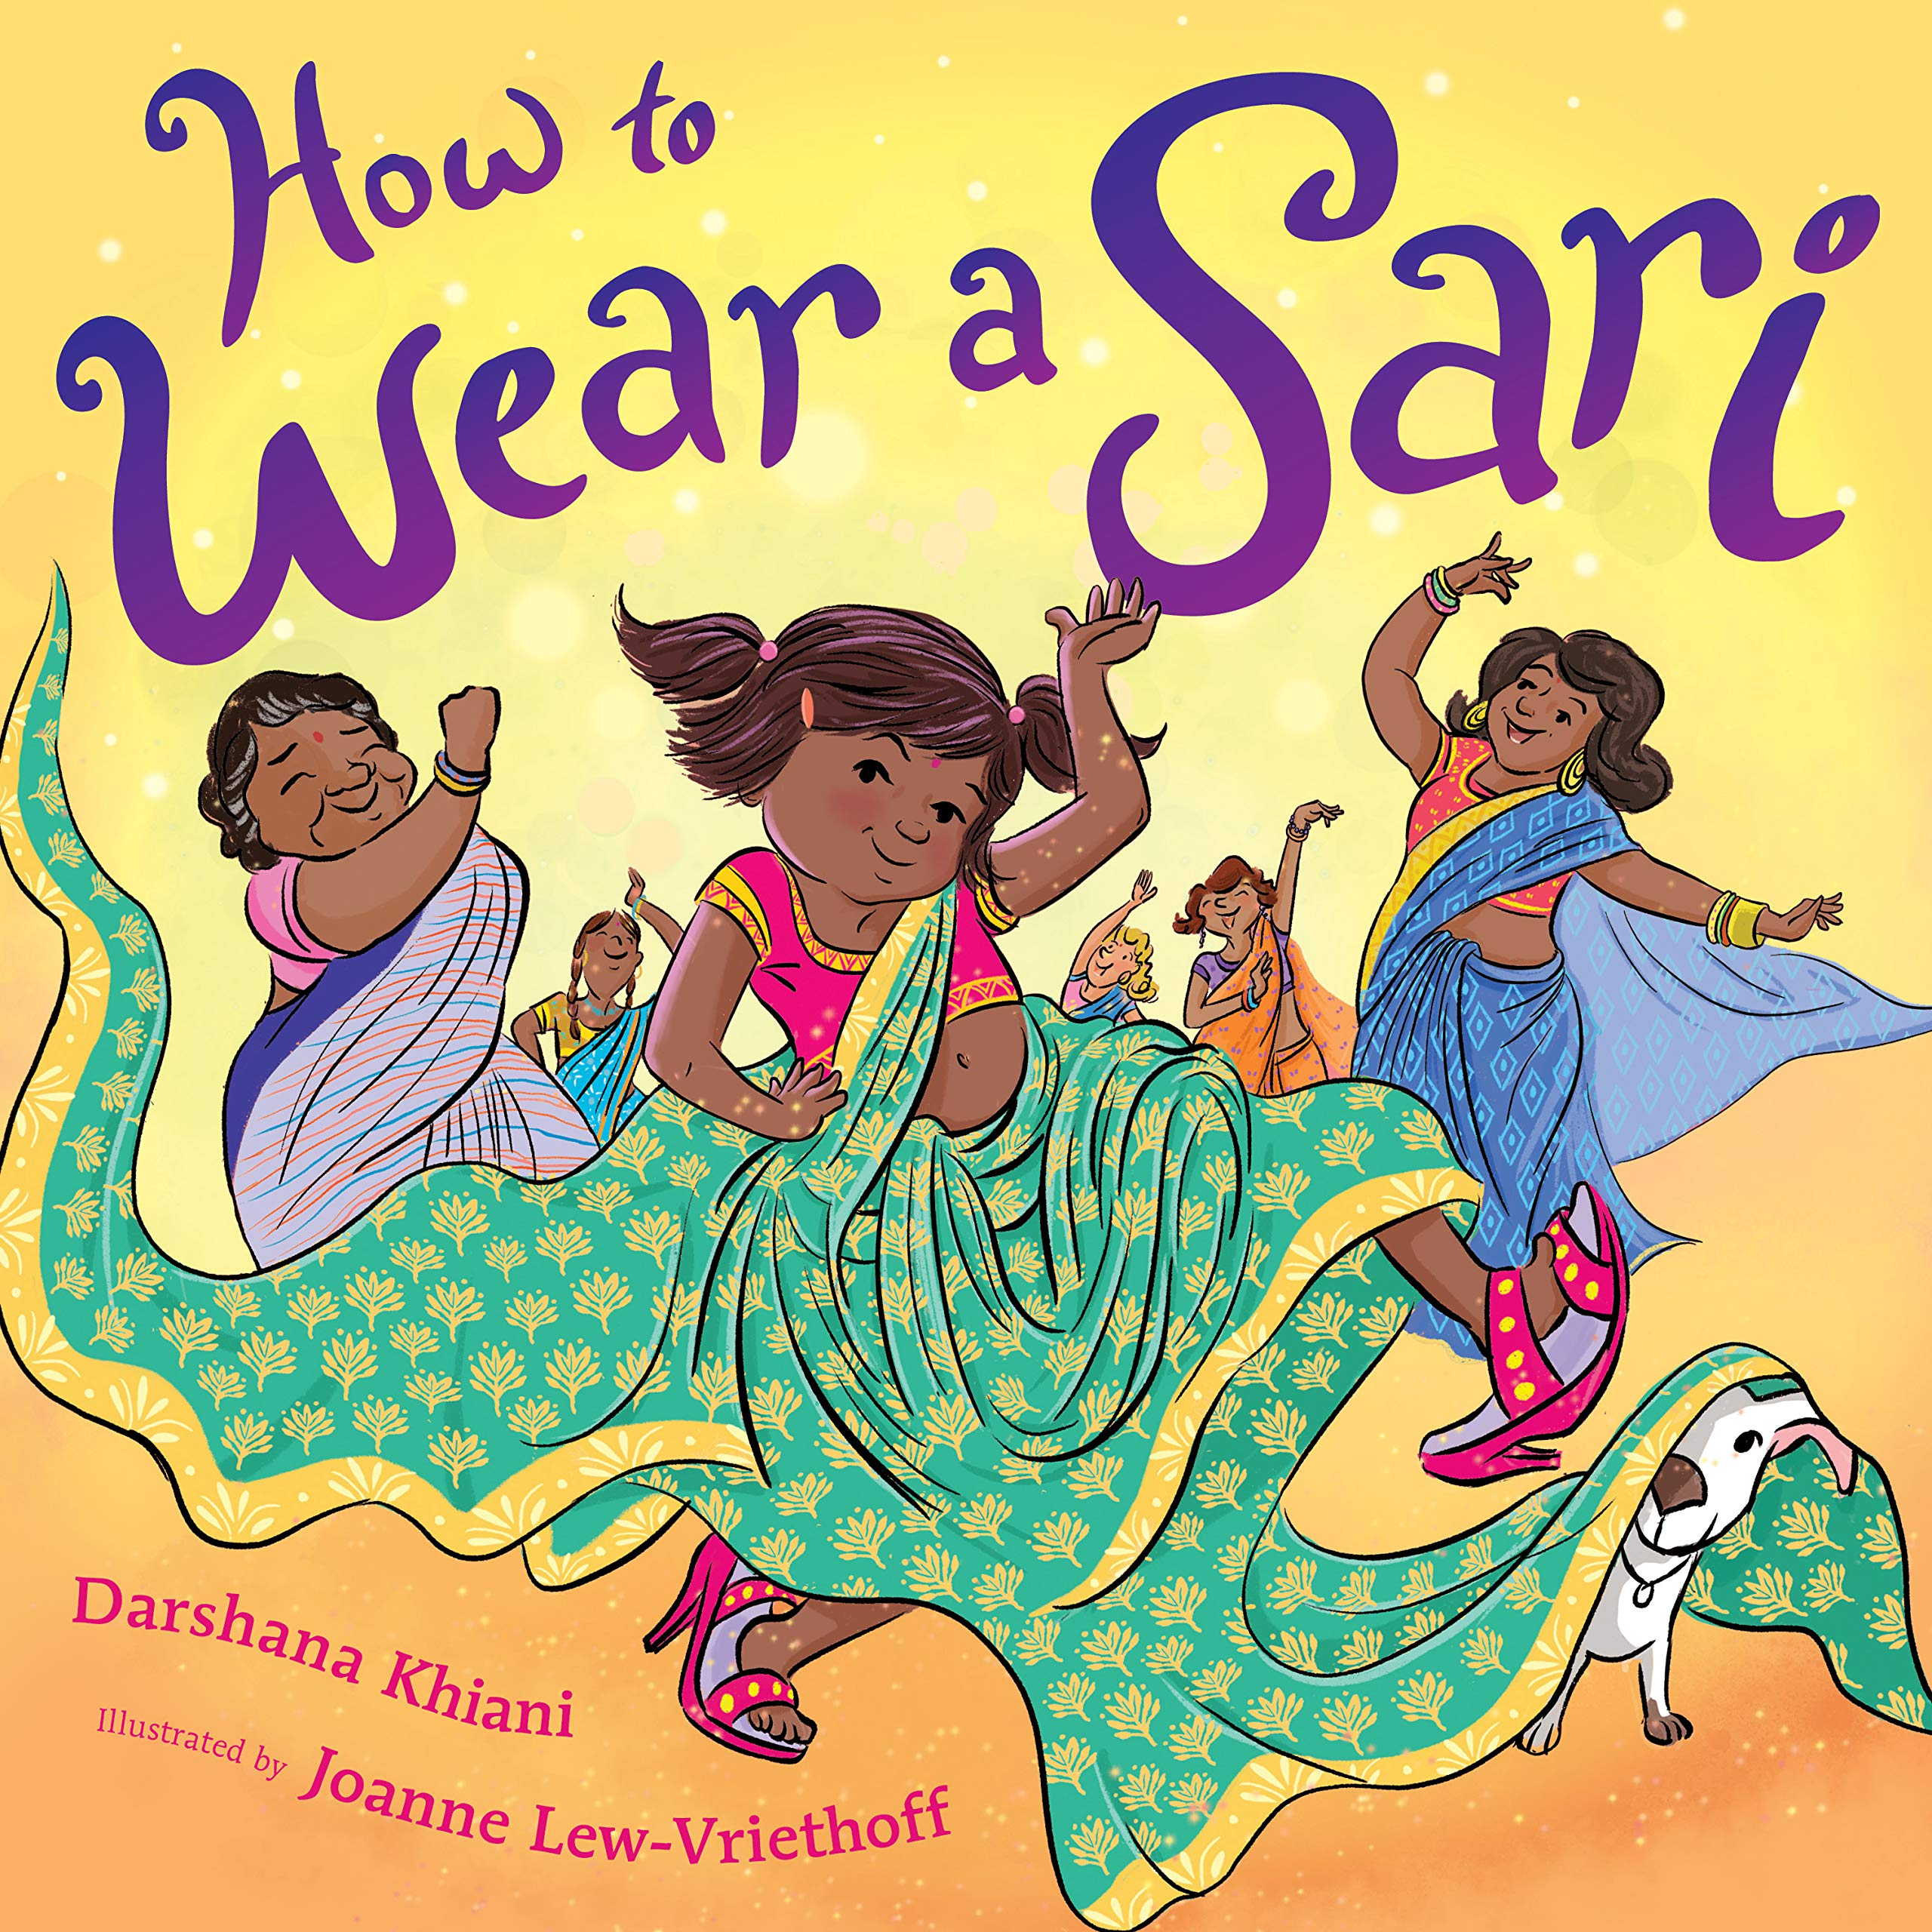 How to Wear a Sari by Darshana Khiani